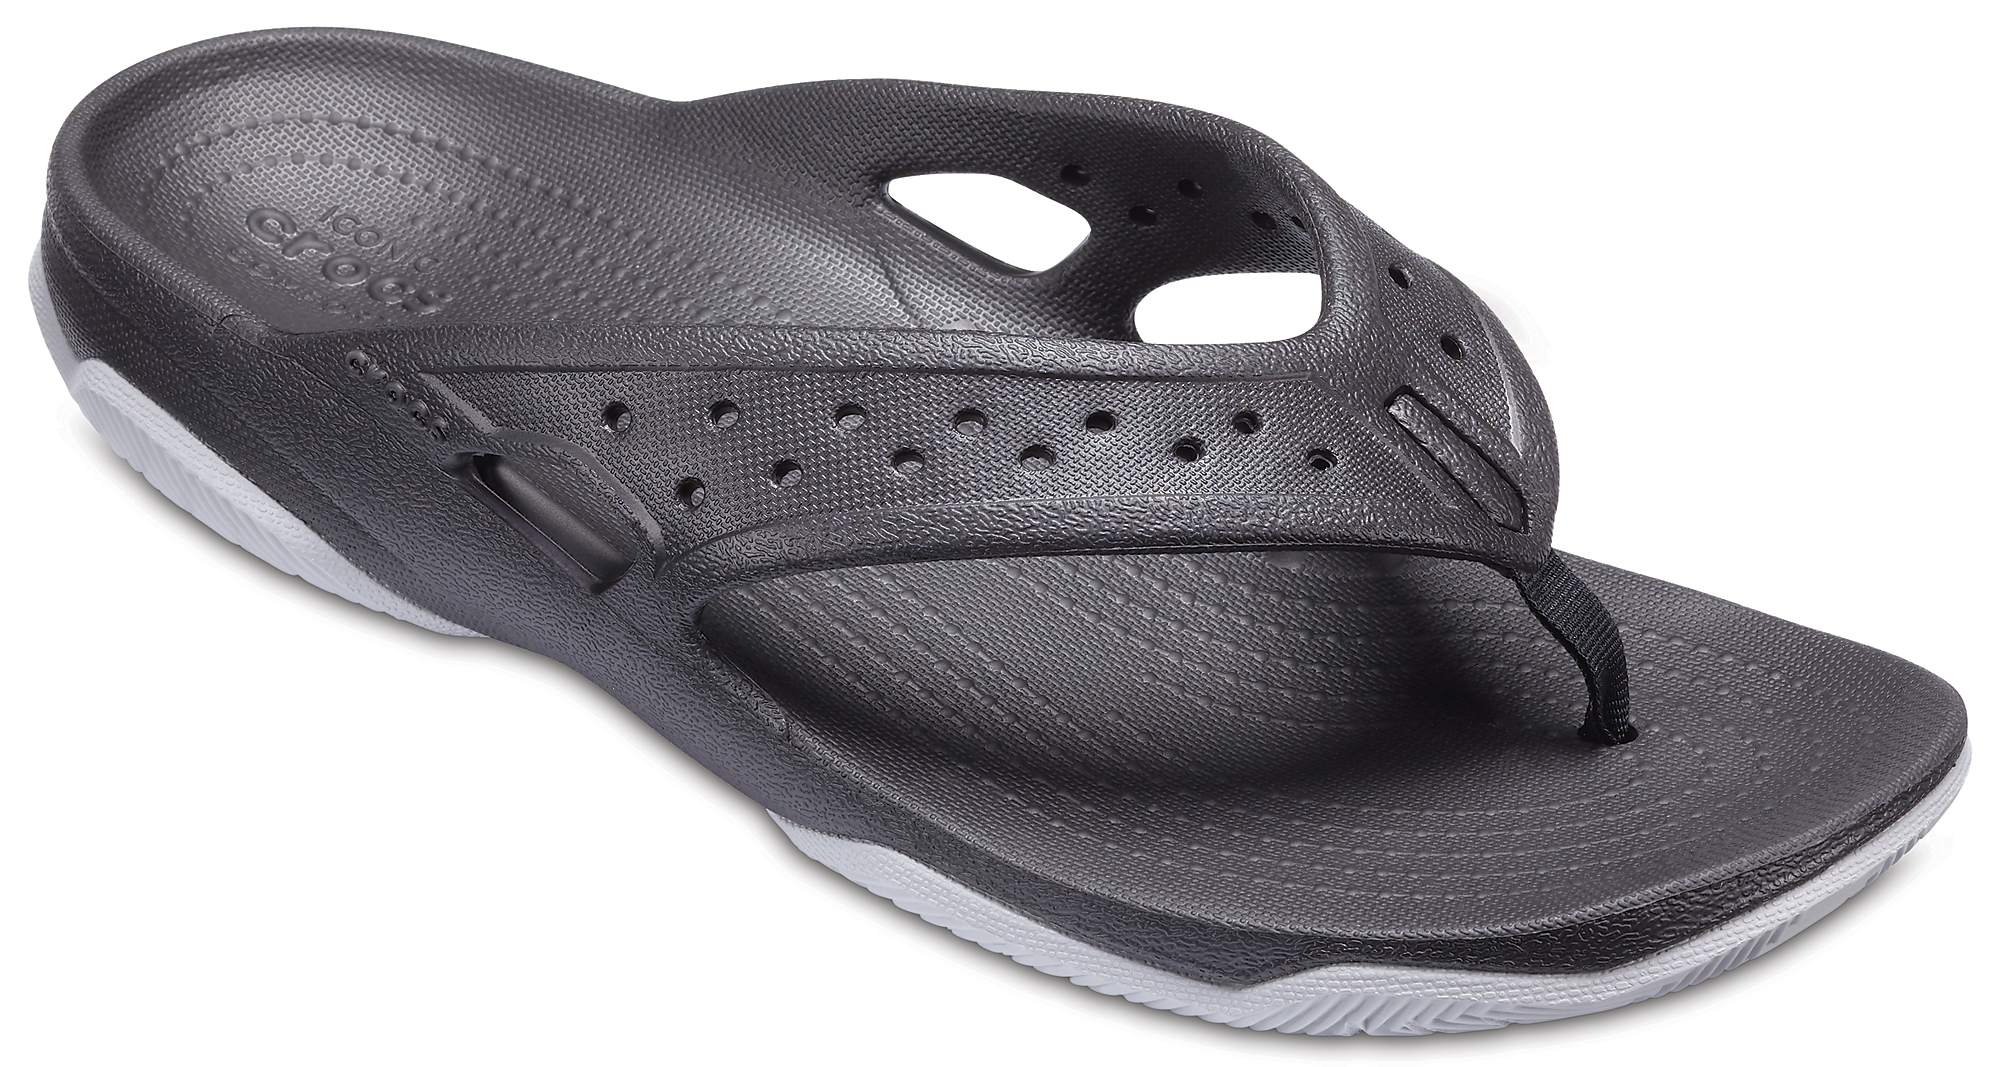 Șlapi Bărbați casual Crocs Mens' Swiftwater Deck Flip Negri -2